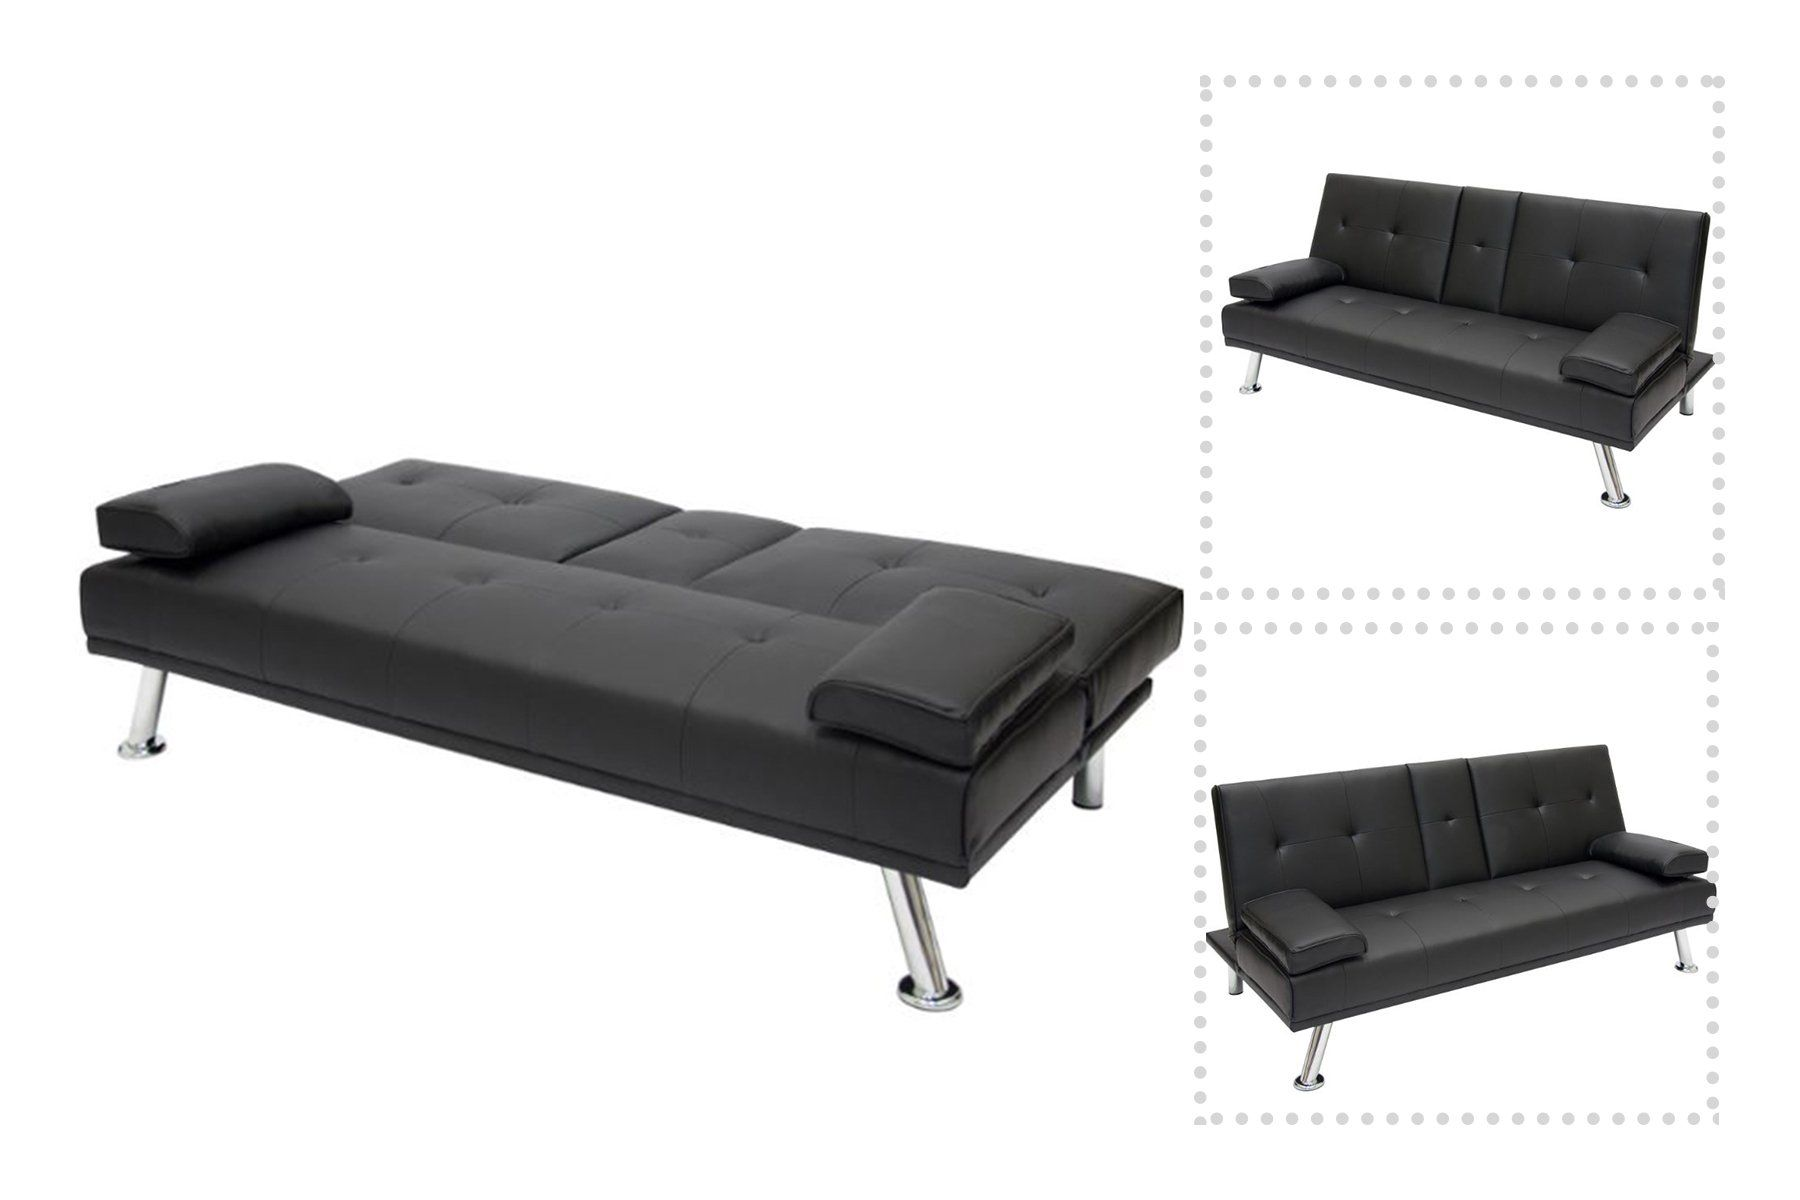 Sofa Bed Cup Holders Fold Up Down Entertainment Furniture Couch Recliner Futon Ebook See This Wonderful Item This Is An Affiliate Link Couch Couch Furniture Entertainment Furniture